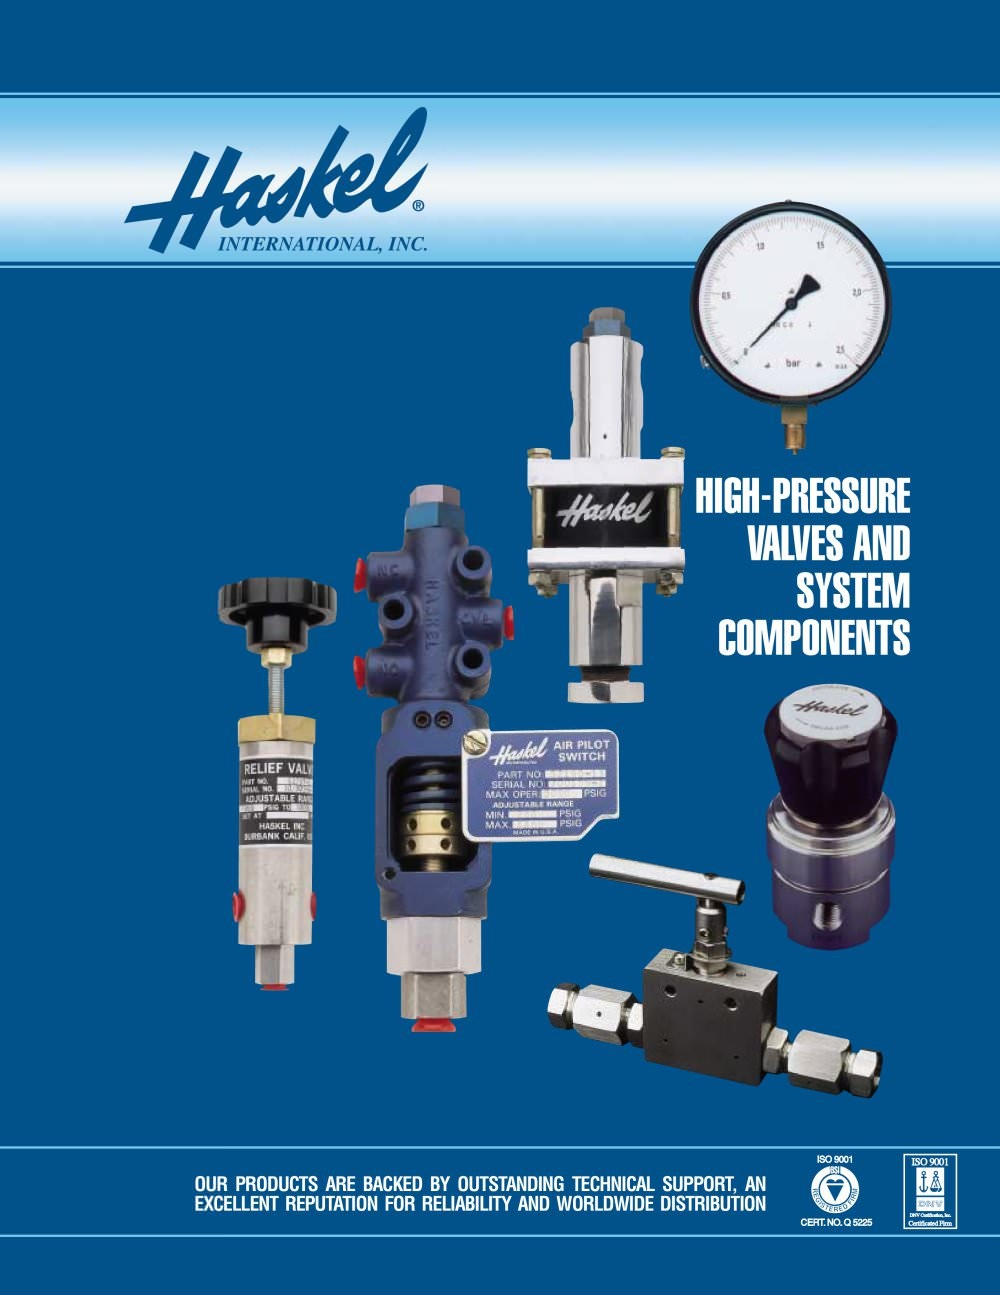 Pump Haskell - pressure pump, strong Haskell - test pump